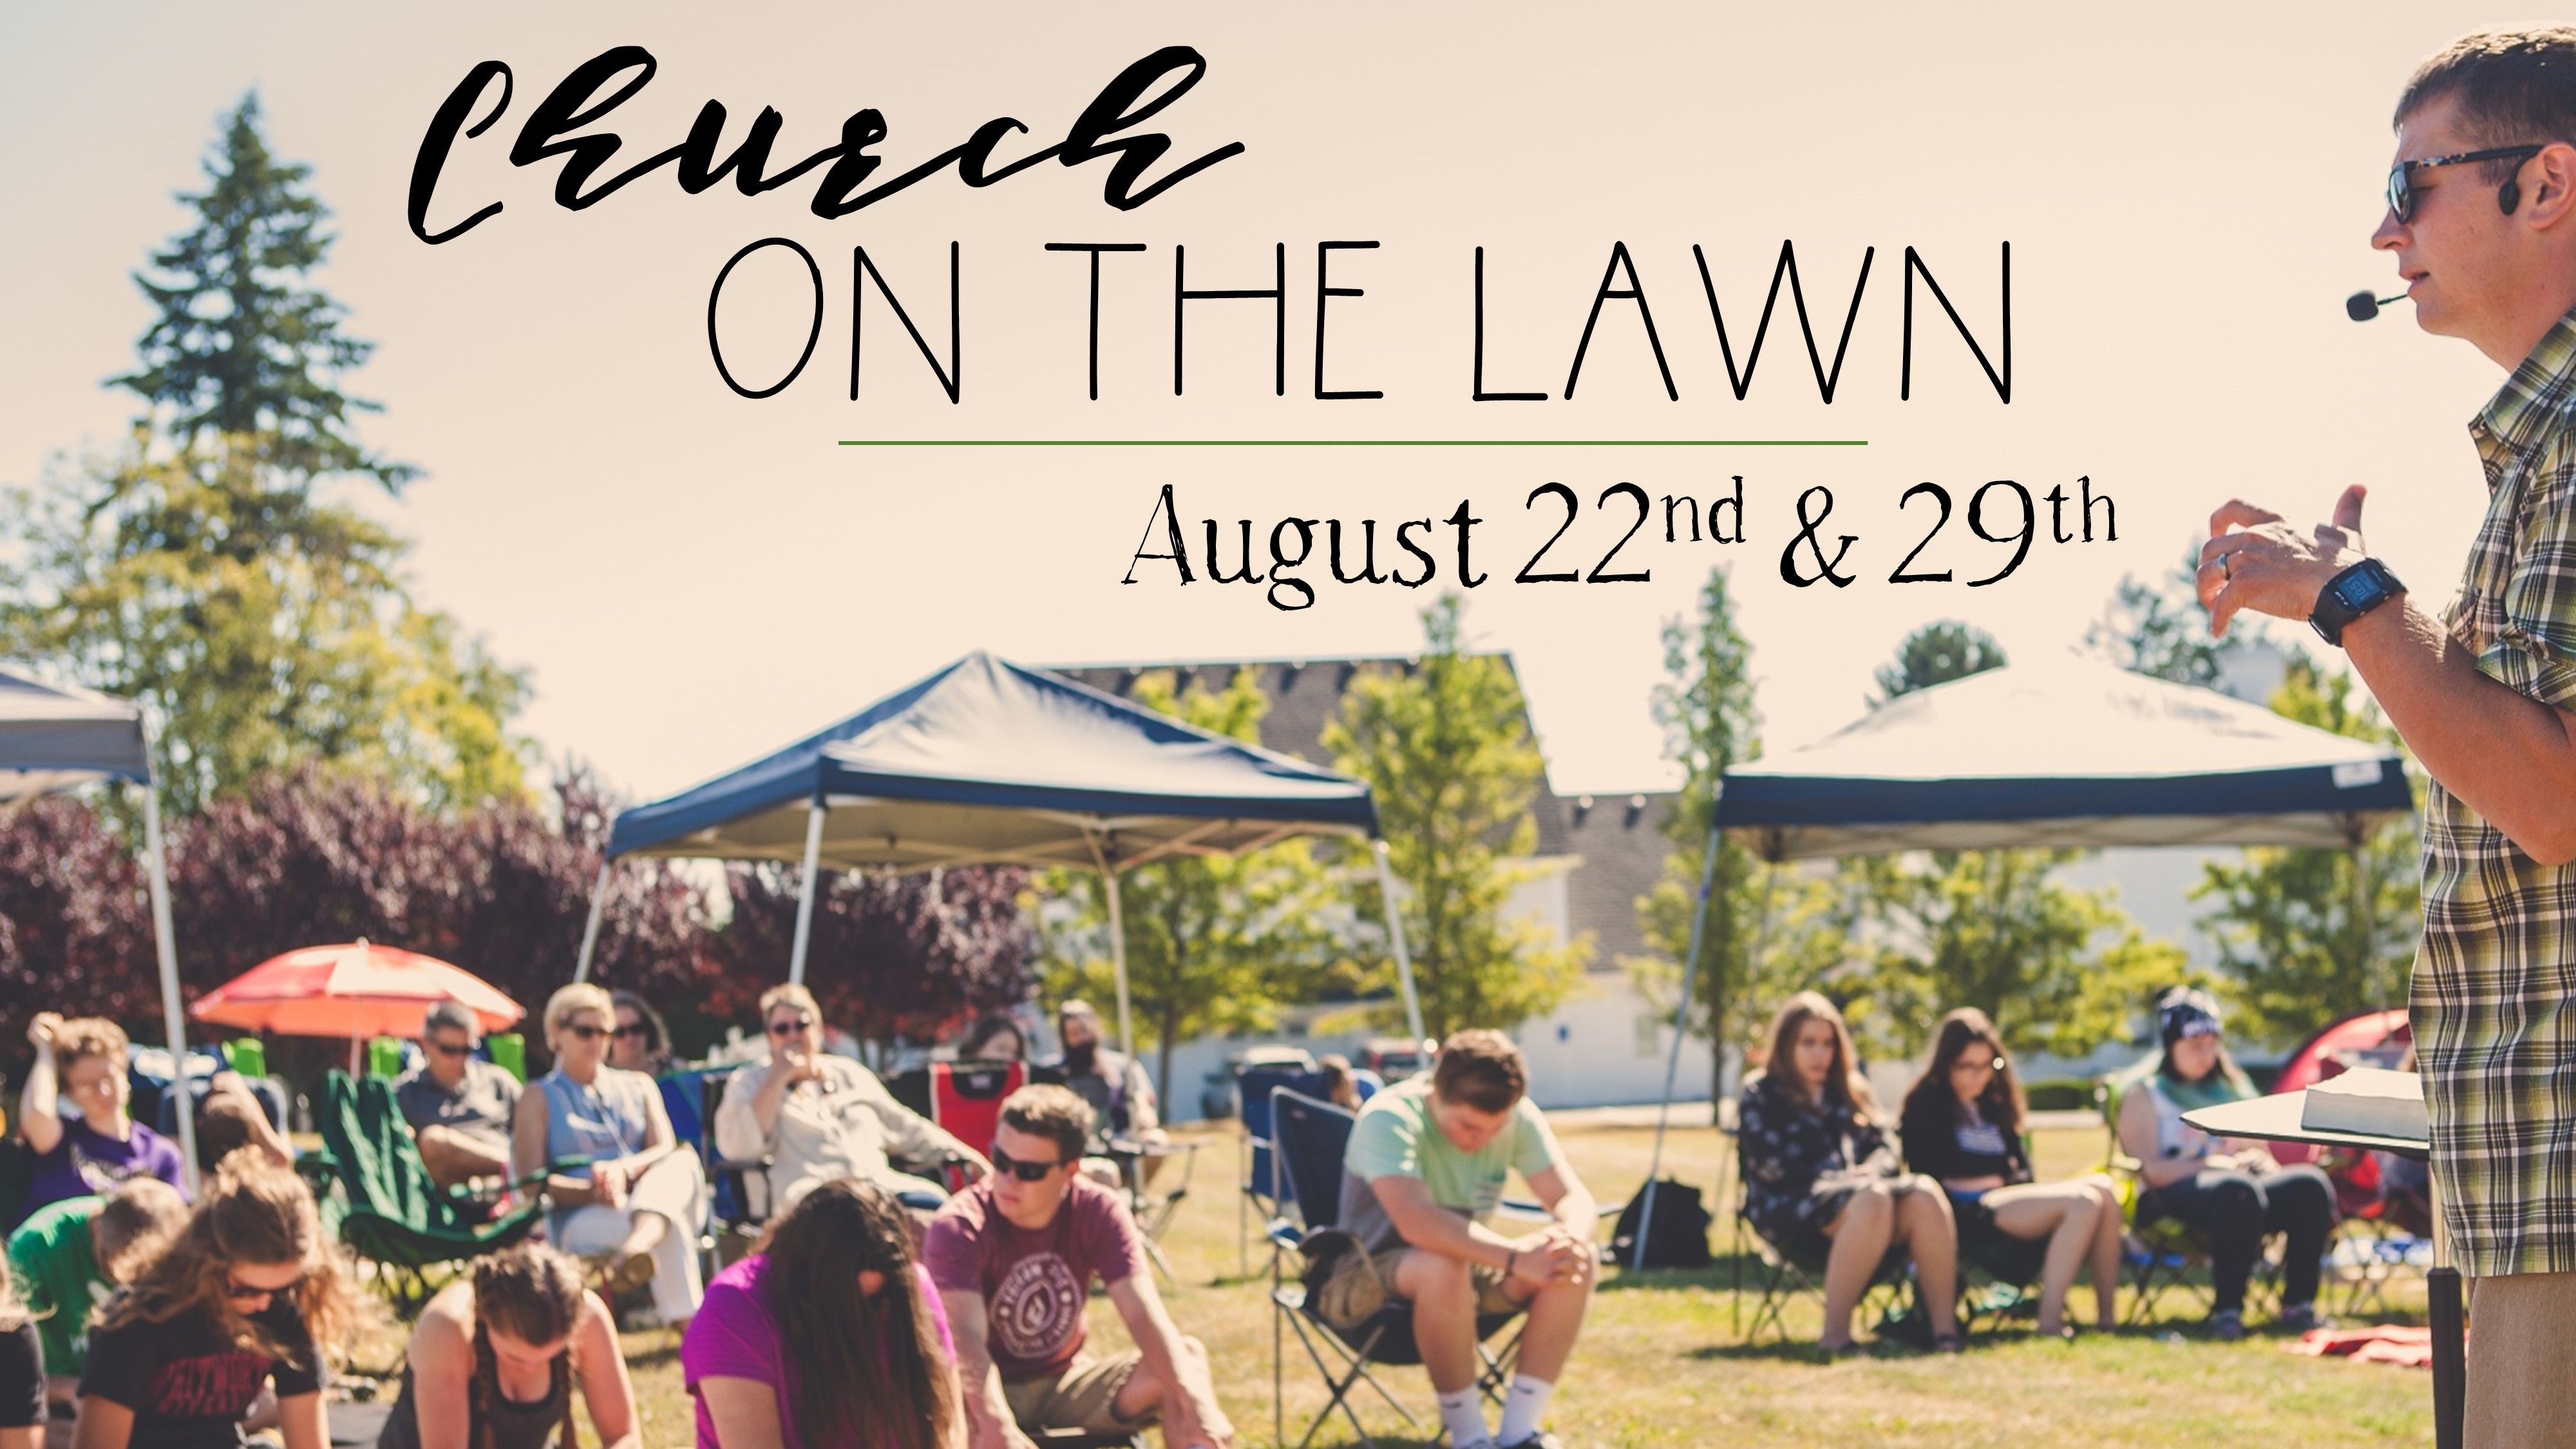 Church on the lawn 2021 image